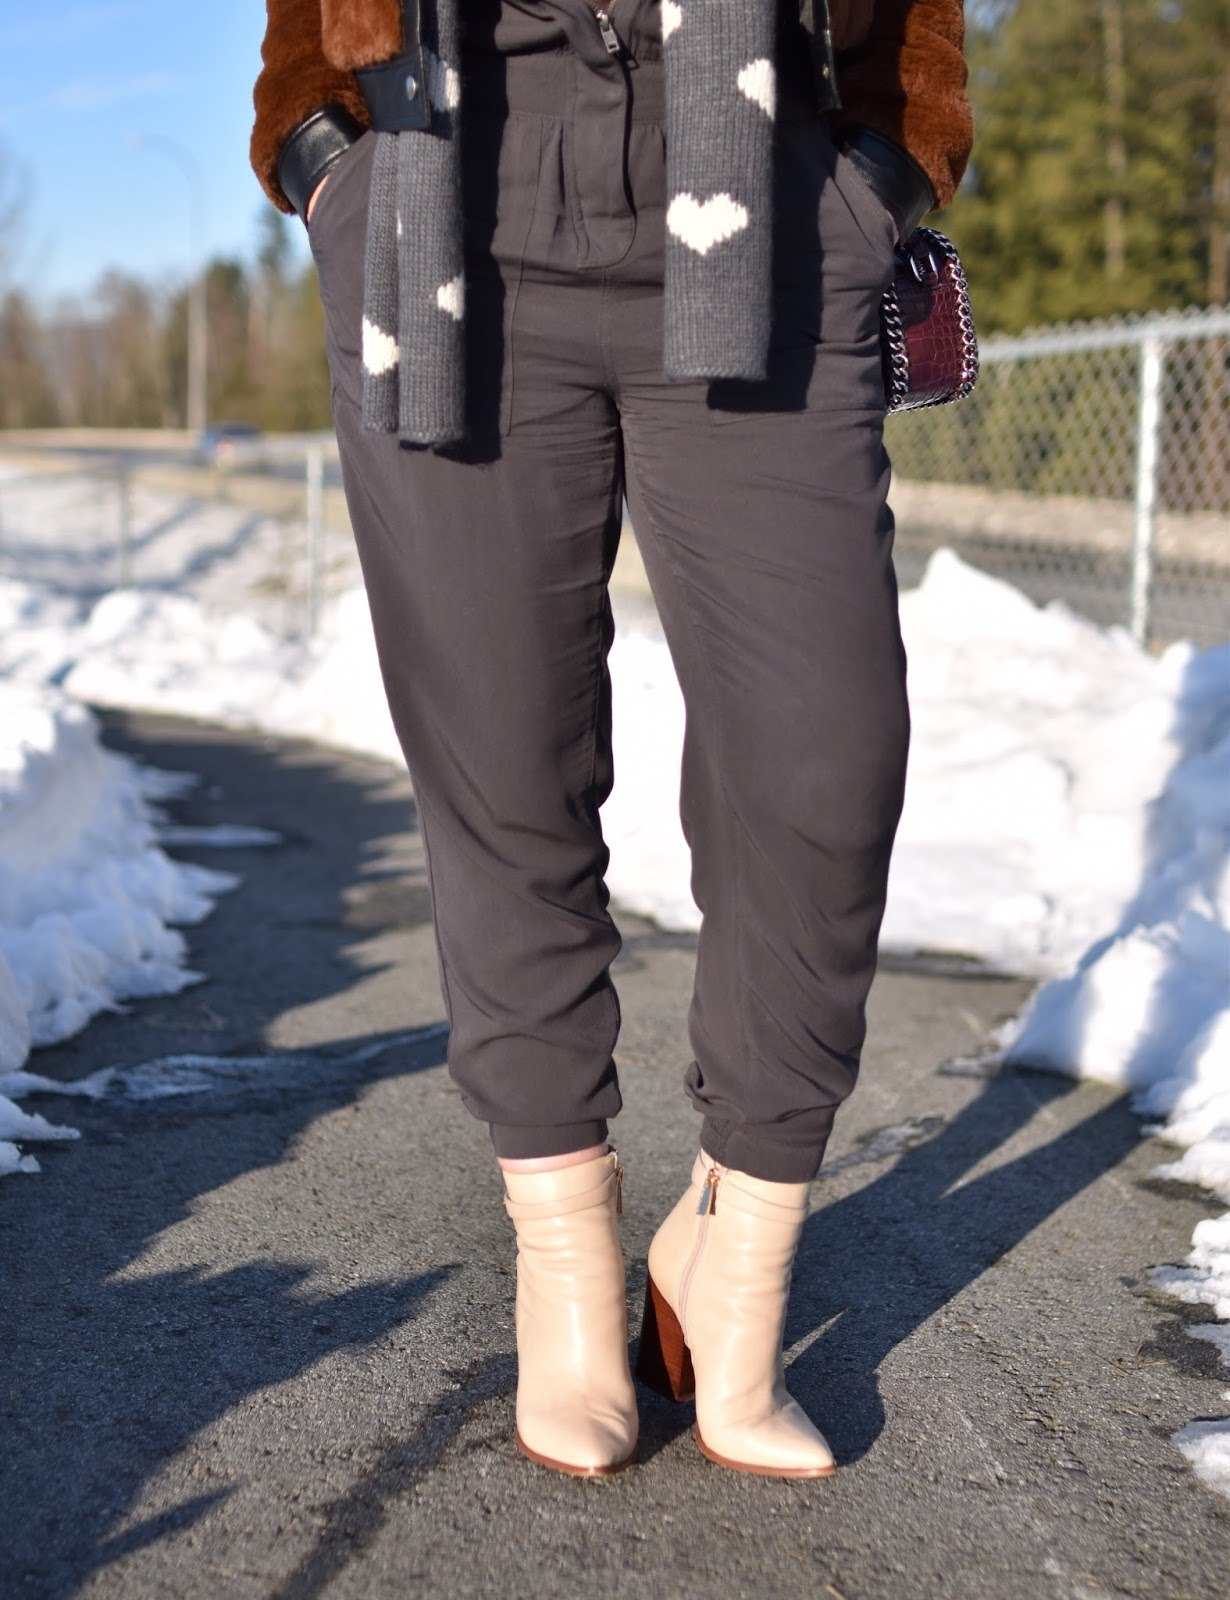 Monika Faulkner outfit inspiration - jumpsuit, teddybear bomber jacket, ivory Vince Camuto booties